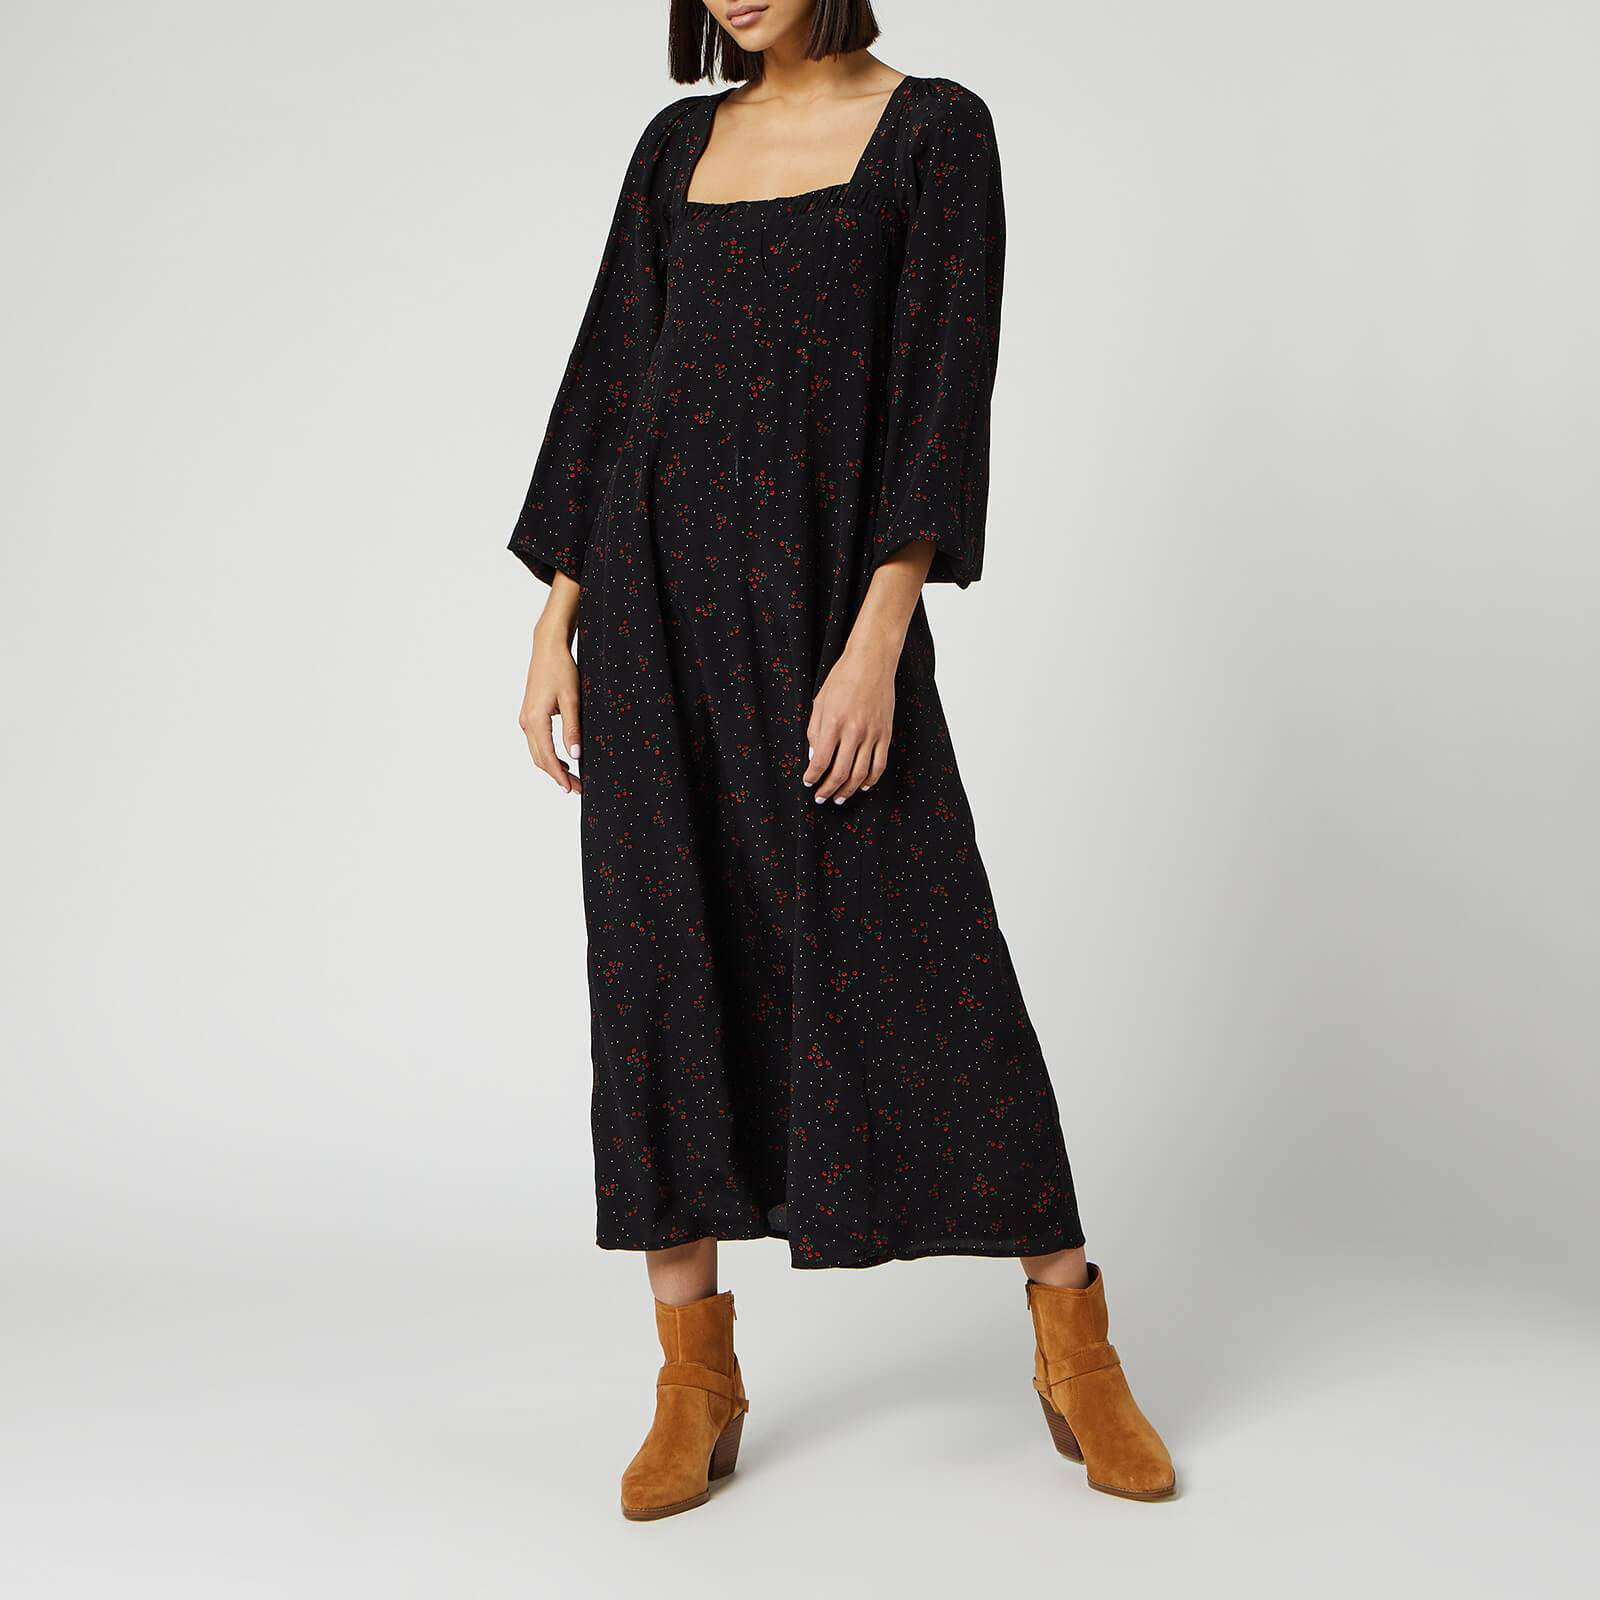 Free People Women's Iris Midi Dress - Black - XS